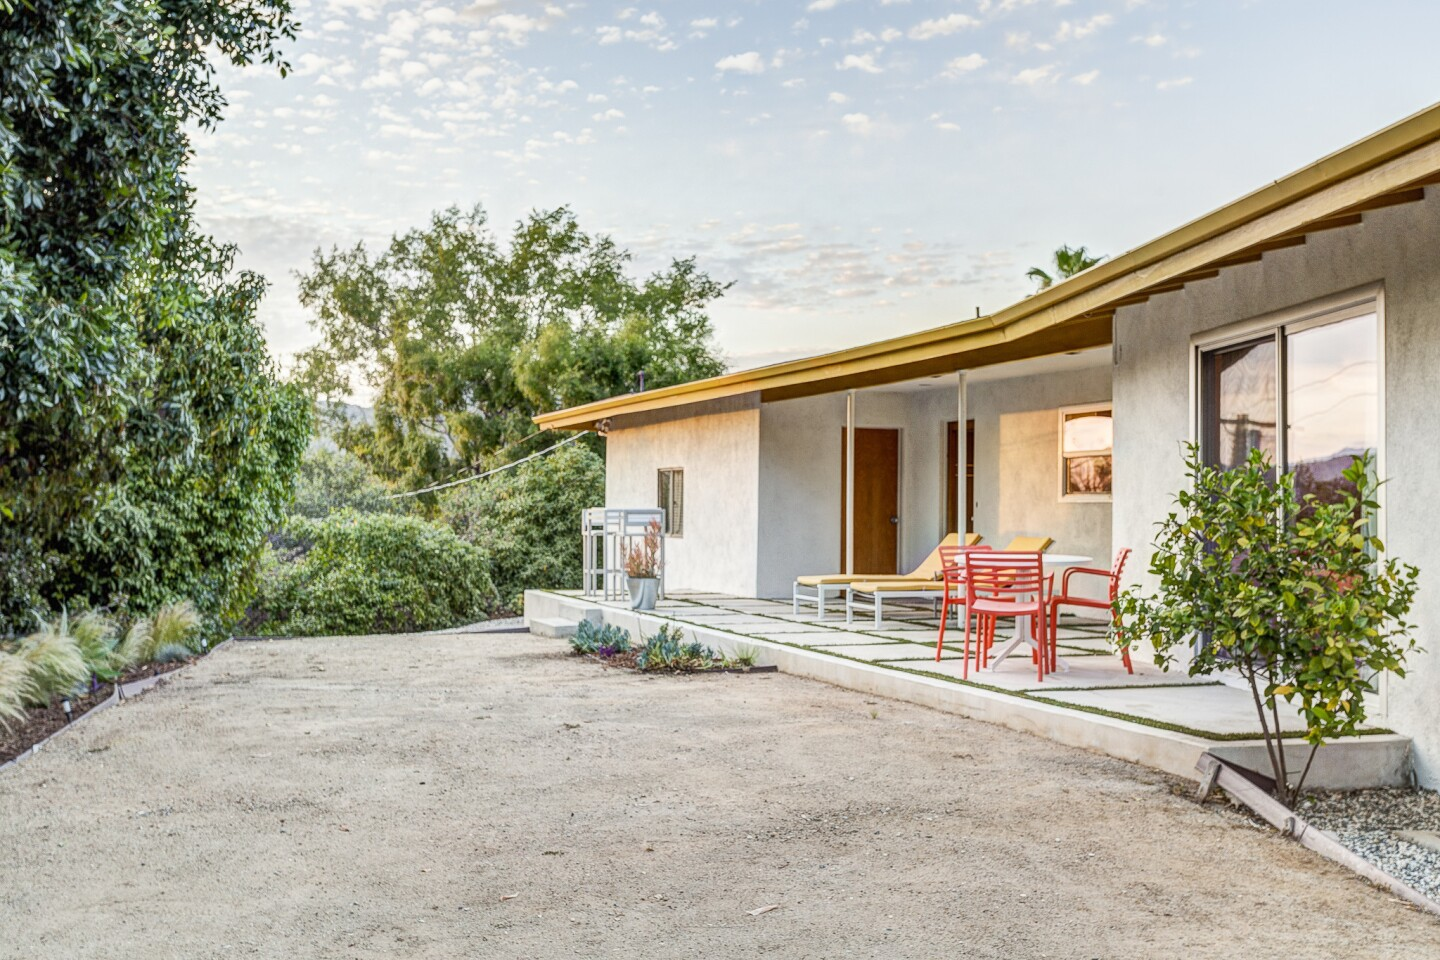 Home of the Day: Midcentury classic in Pasadena